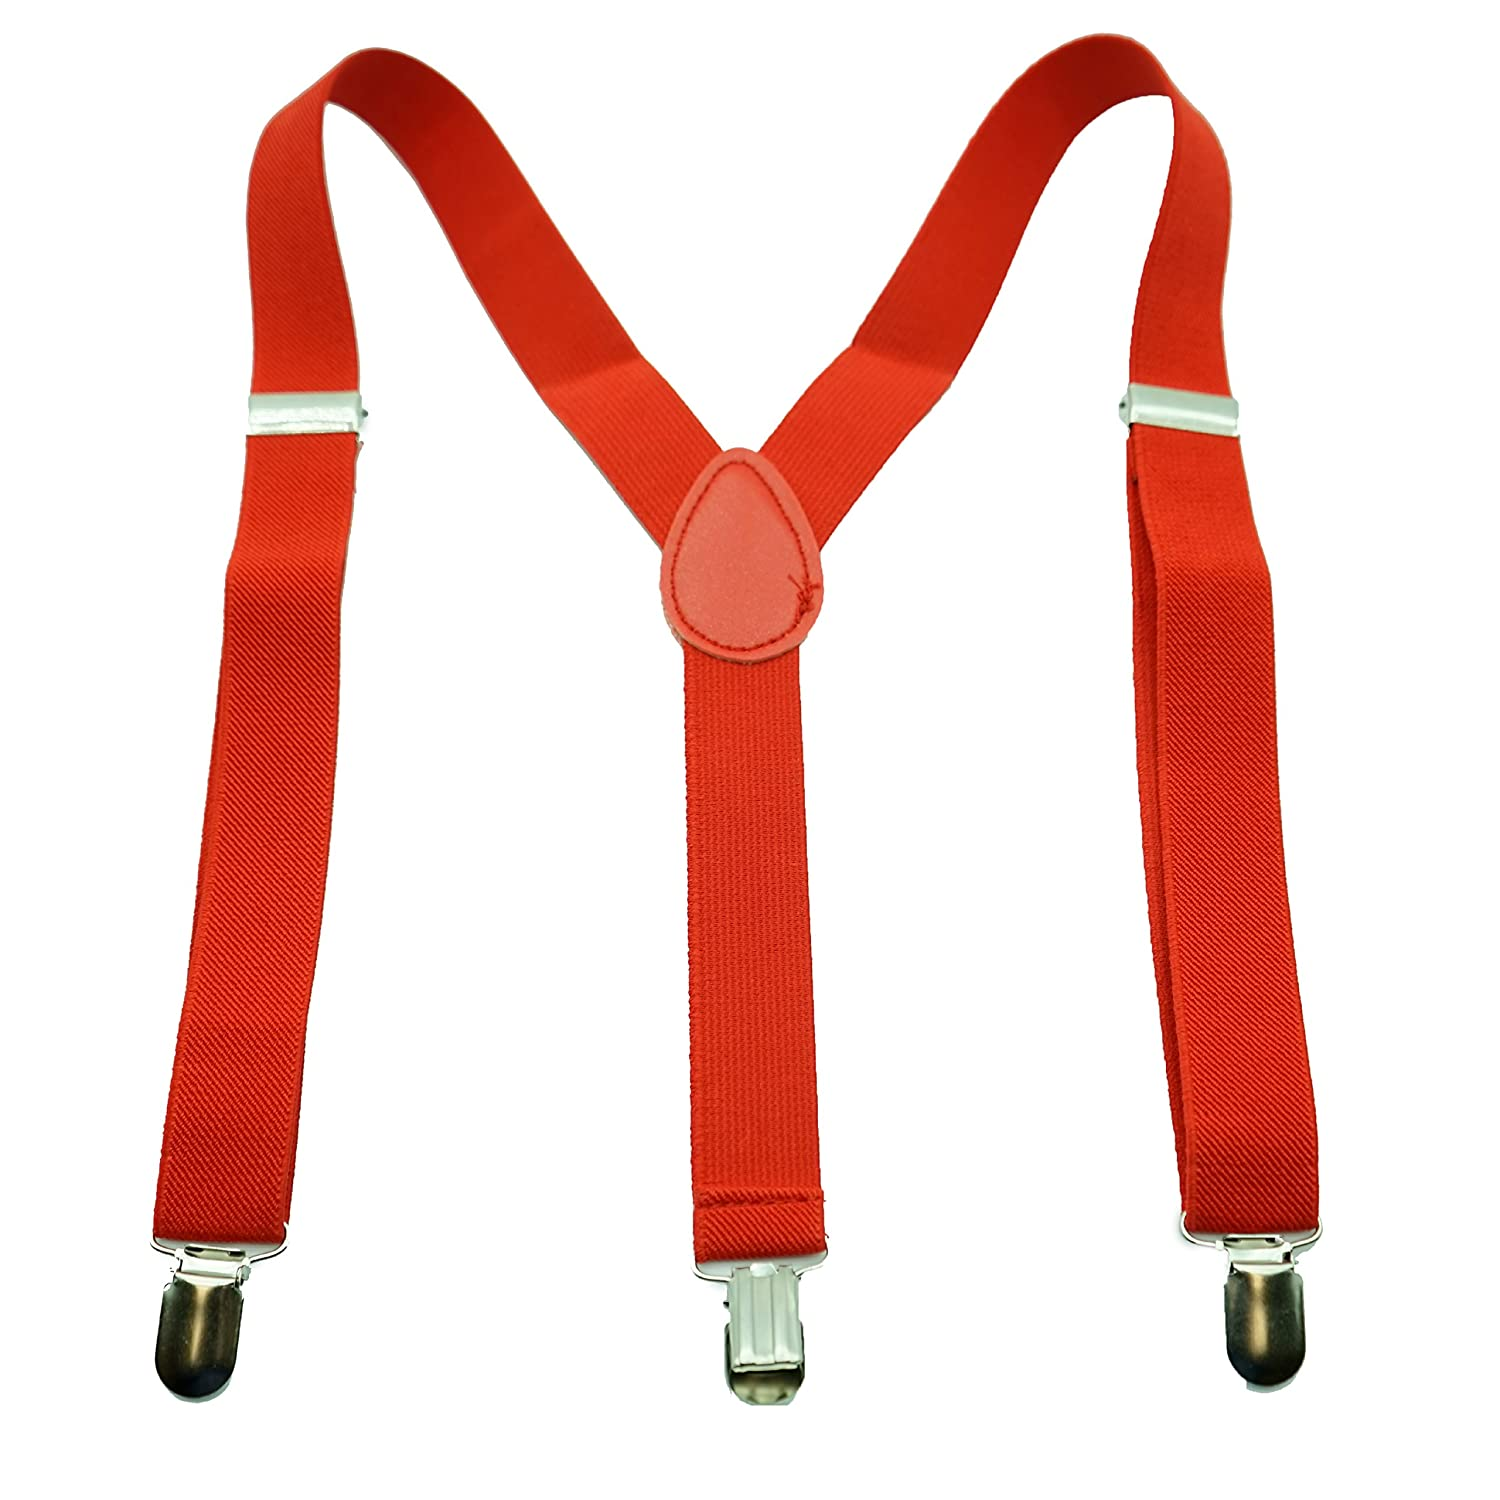 Suspenders For Kids - Boys Girls Comfortable Solid Color Y-Back Style Suspender by Action Ward